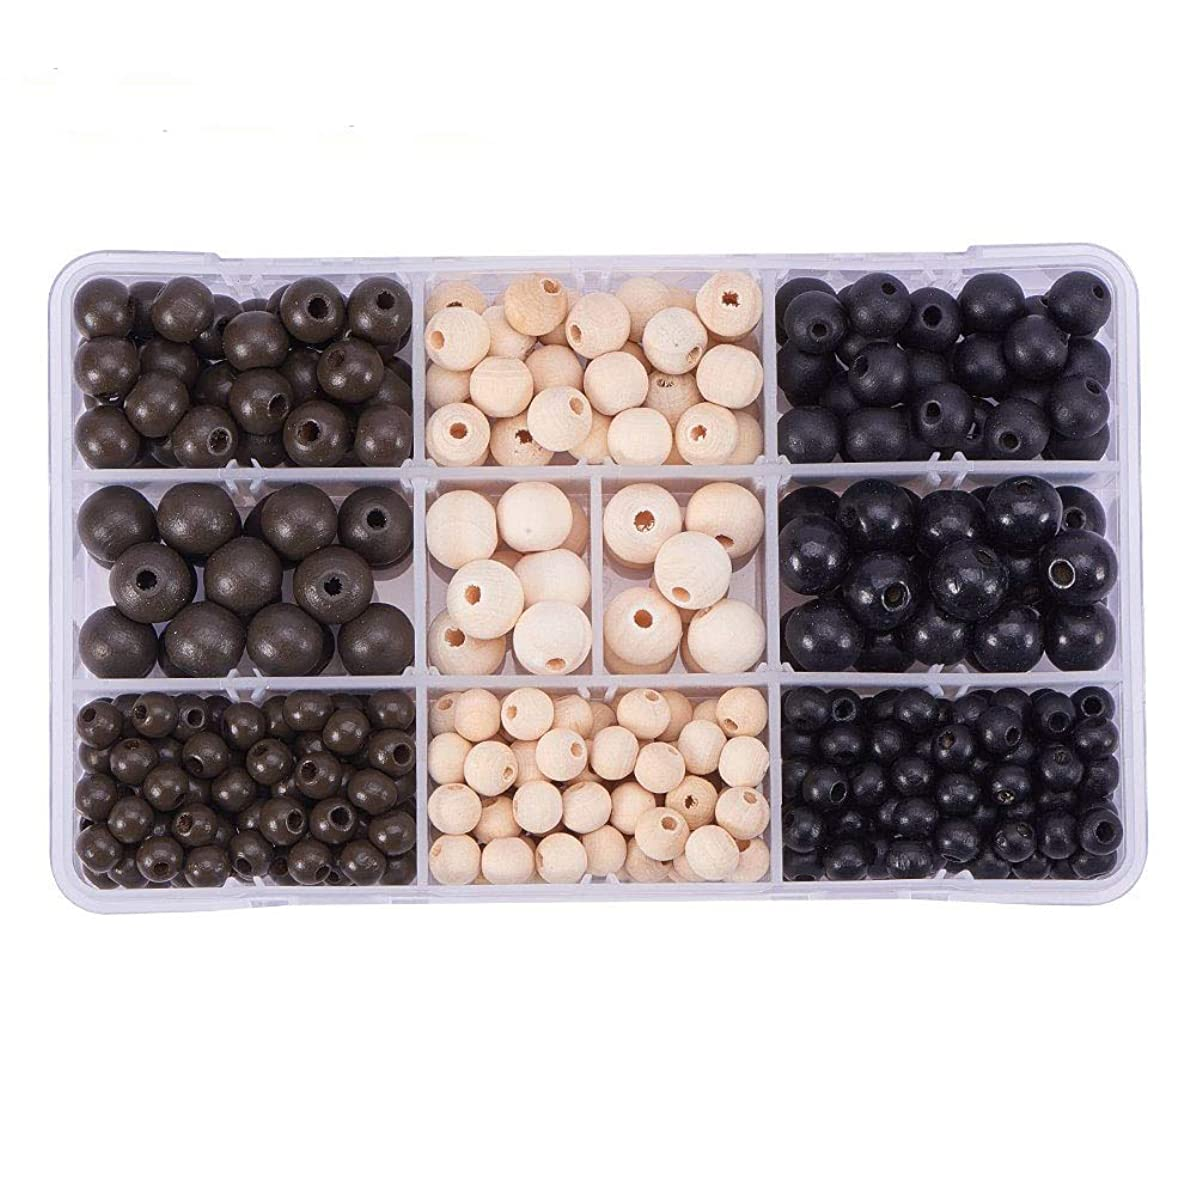 PH PandaHall About 425pcs 7~12mm 3 Color Dyed Round Wood Beads Assorted in Box Non-Toxic Less Burr No Odor for DIY Crafting Jewelry Making